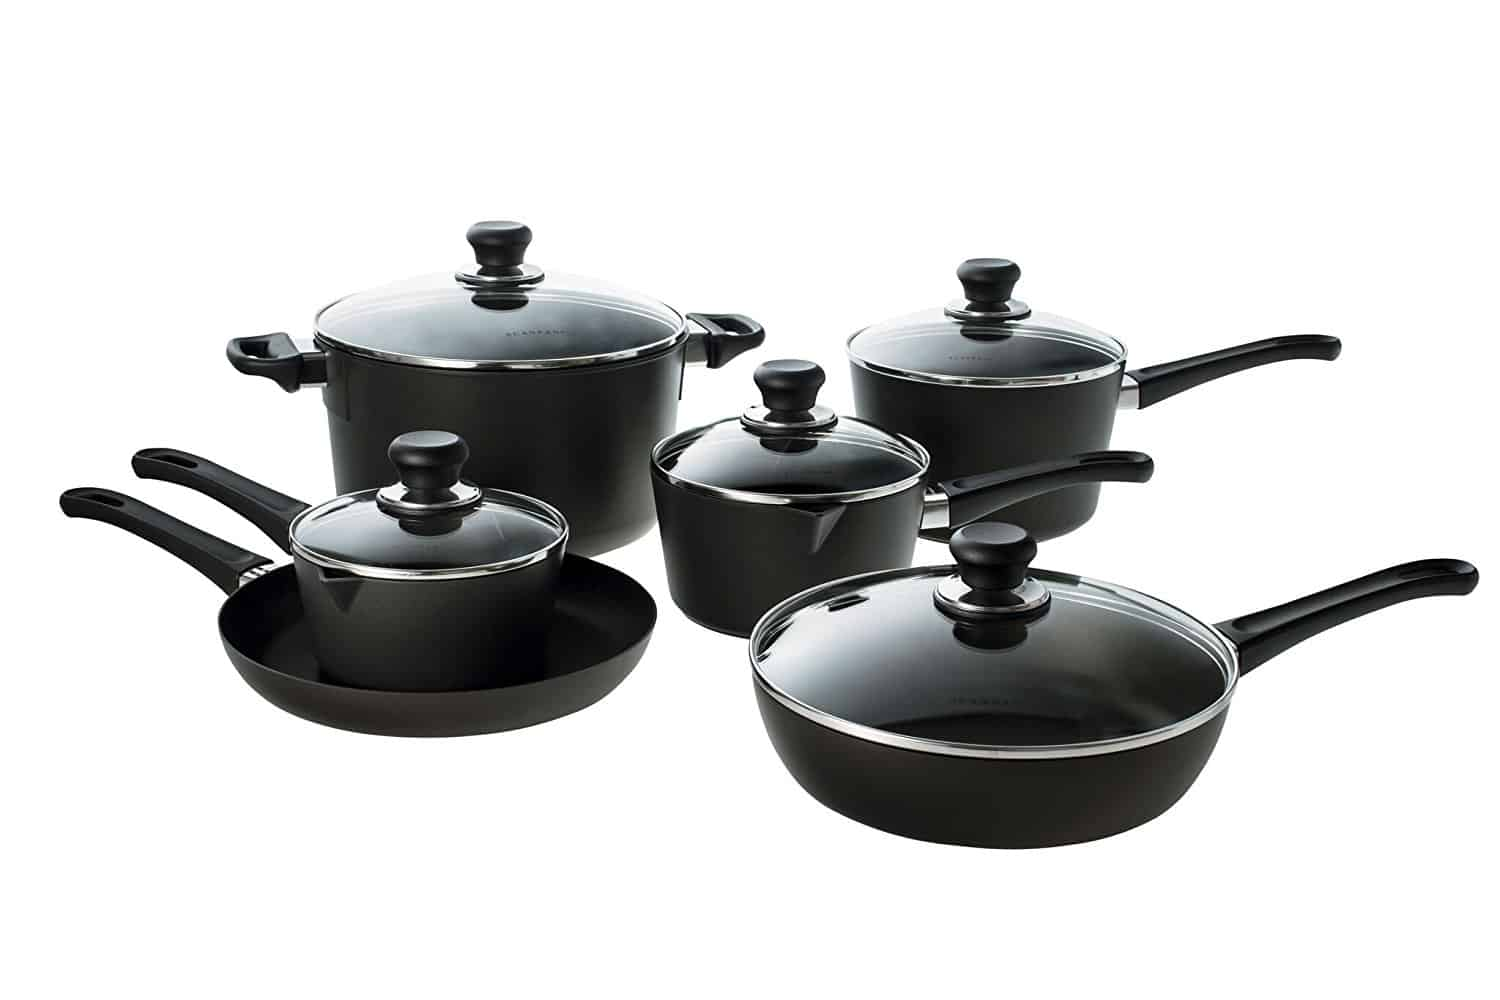 Scanpan Classic 11-Piece review